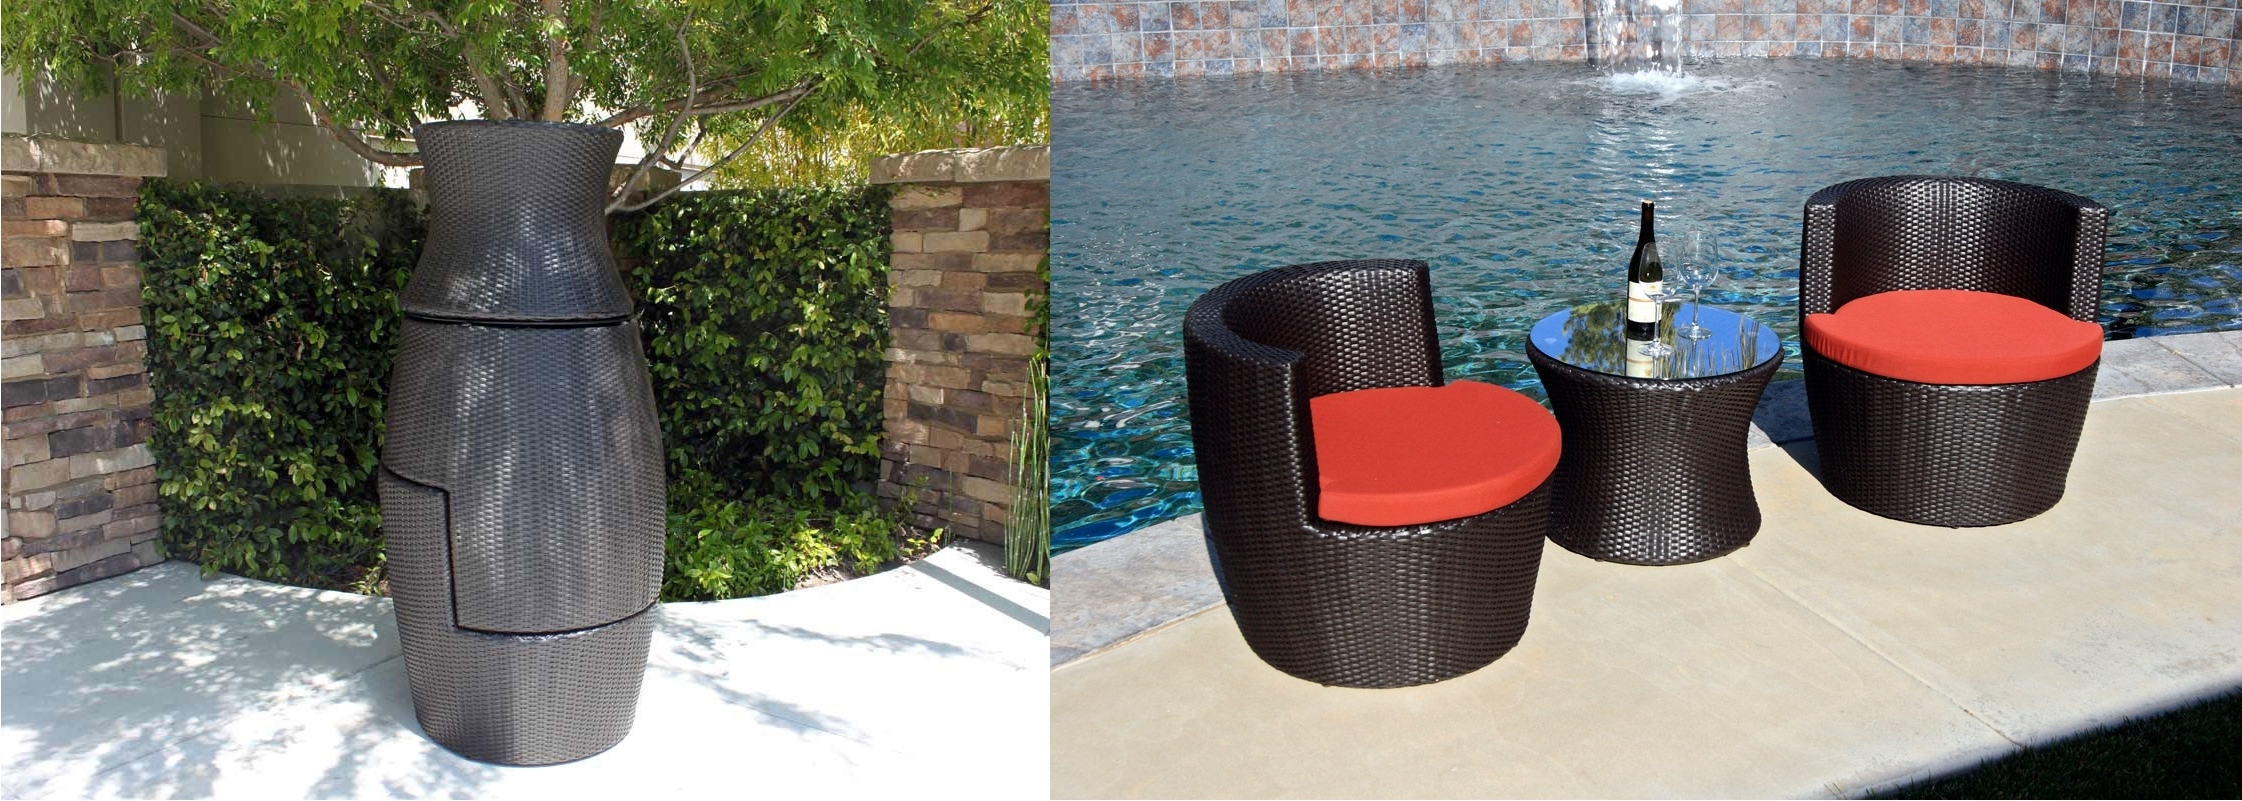 Krevco Patio Umbrellas Pertaining To Best And Newest How To Properly Store Wicker Furniture In The Winter (View 9 of 20)